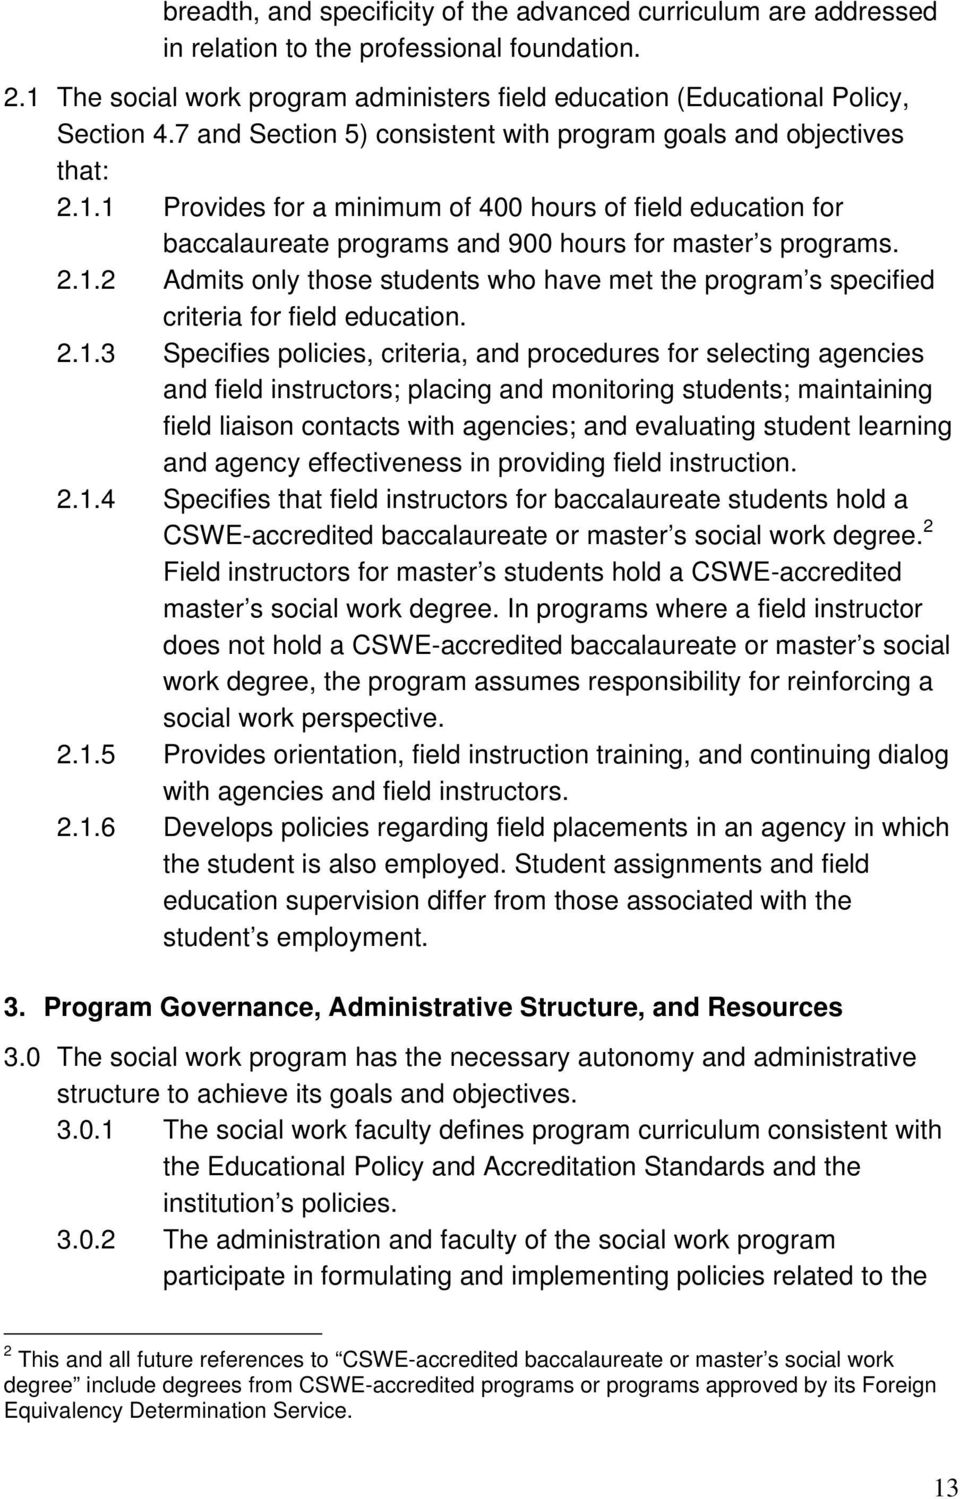 2.1.3 Specifies policies, criteria, and procedures for selecting agencies and field instructors; placing and monitoring students; maintaining field liaison contacts with agencies; and evaluating